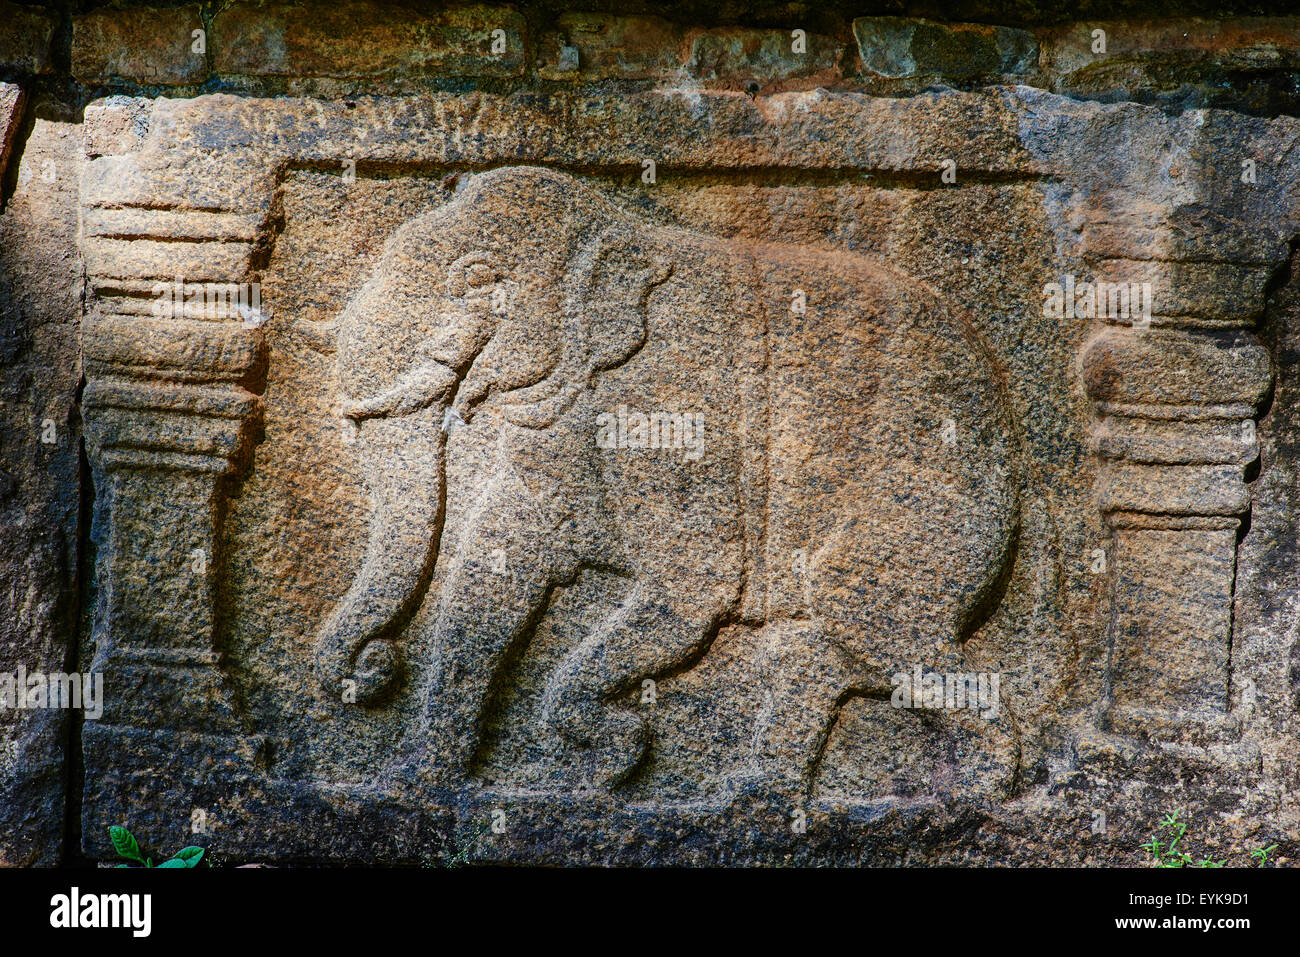 Sri Lanka, Ceylon, North Central Province, ancient city of Polonnaruwa, UNESCO World Heritage Site, Parakrama Bahu's - Stock Image